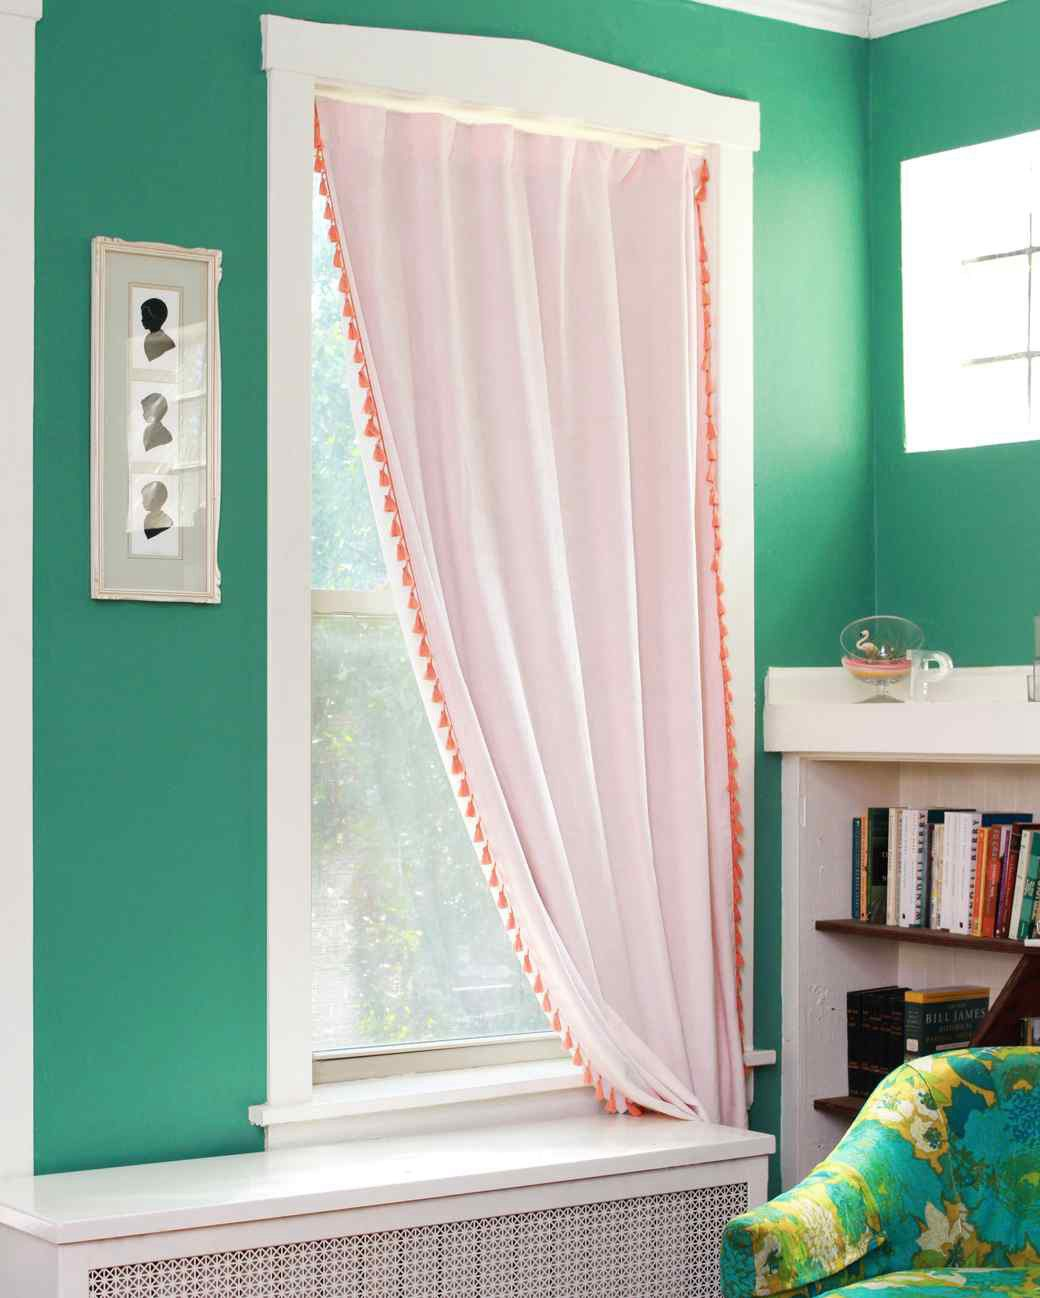 10. No-Sew Blackout Curtains